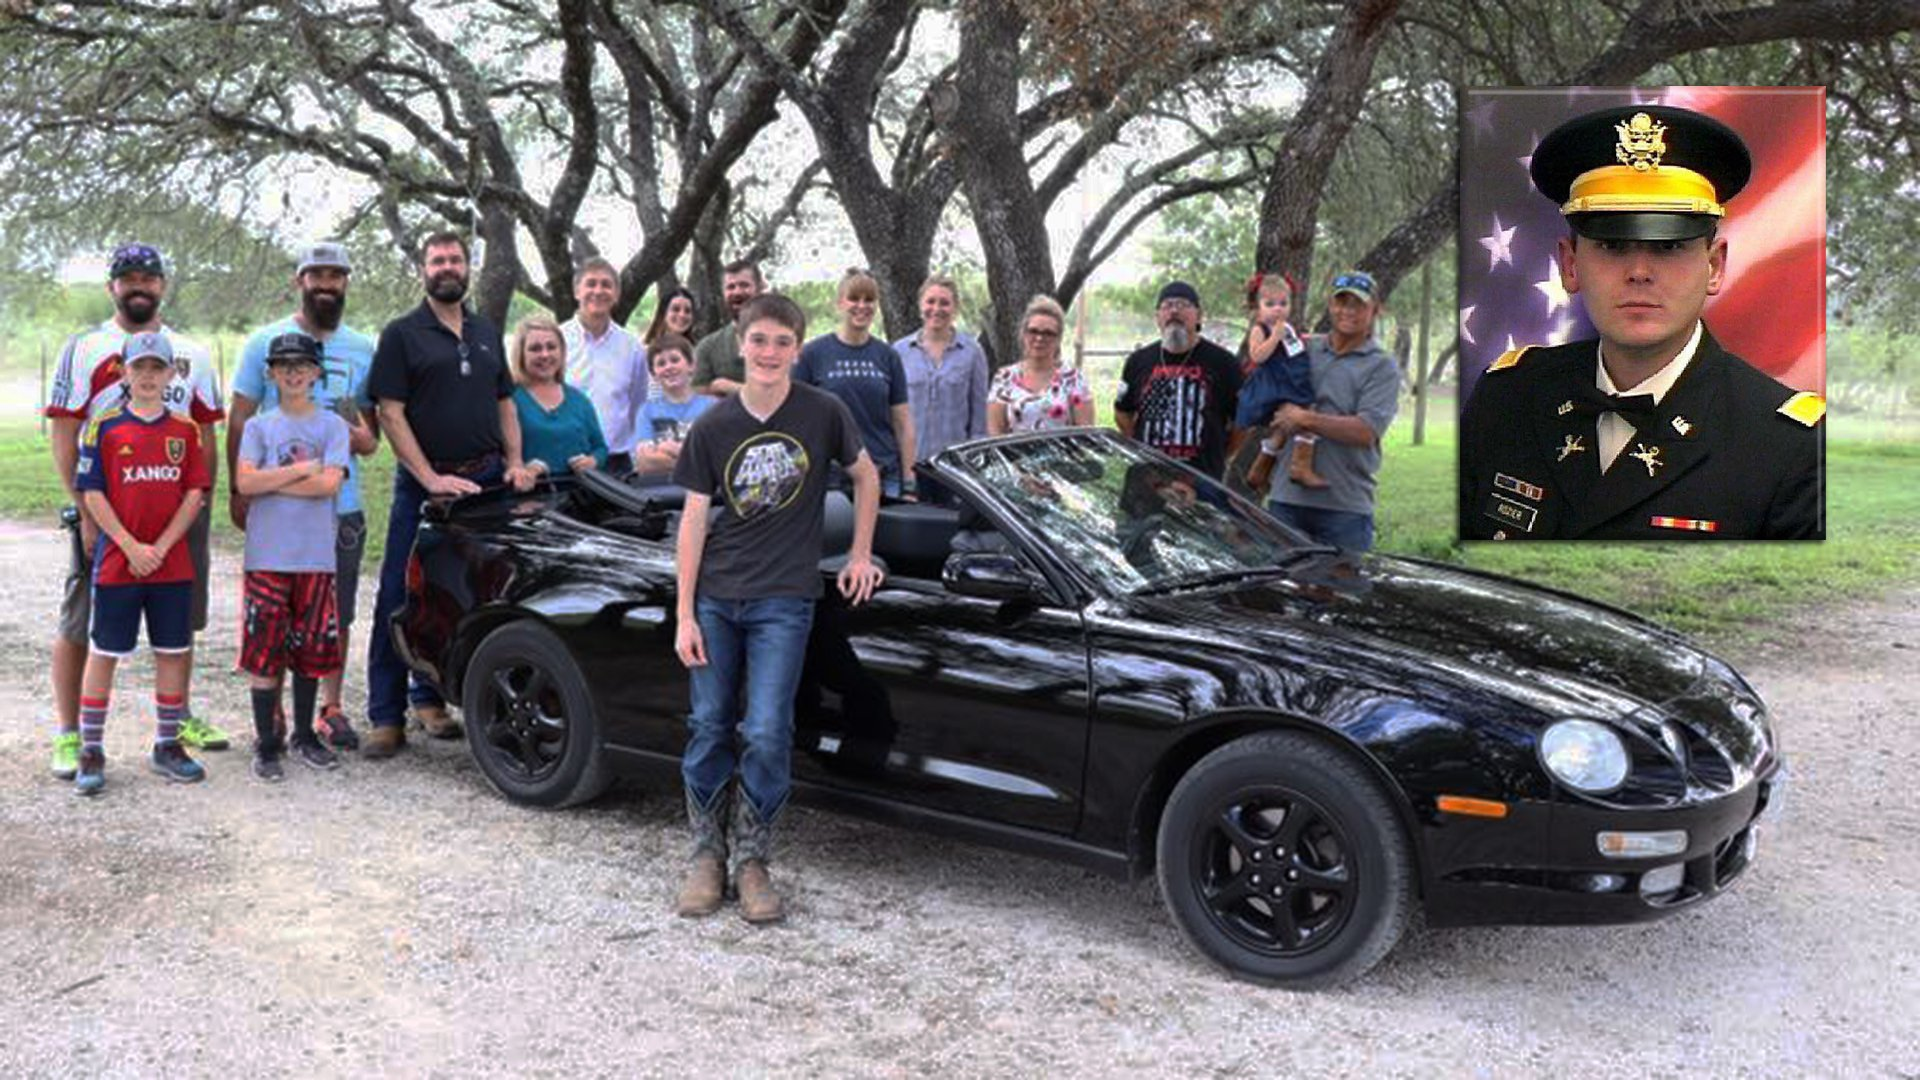 Widow Tracks Down Fallen U.S. Soldier's Old Toyota Celica to Surprise Teenage Son